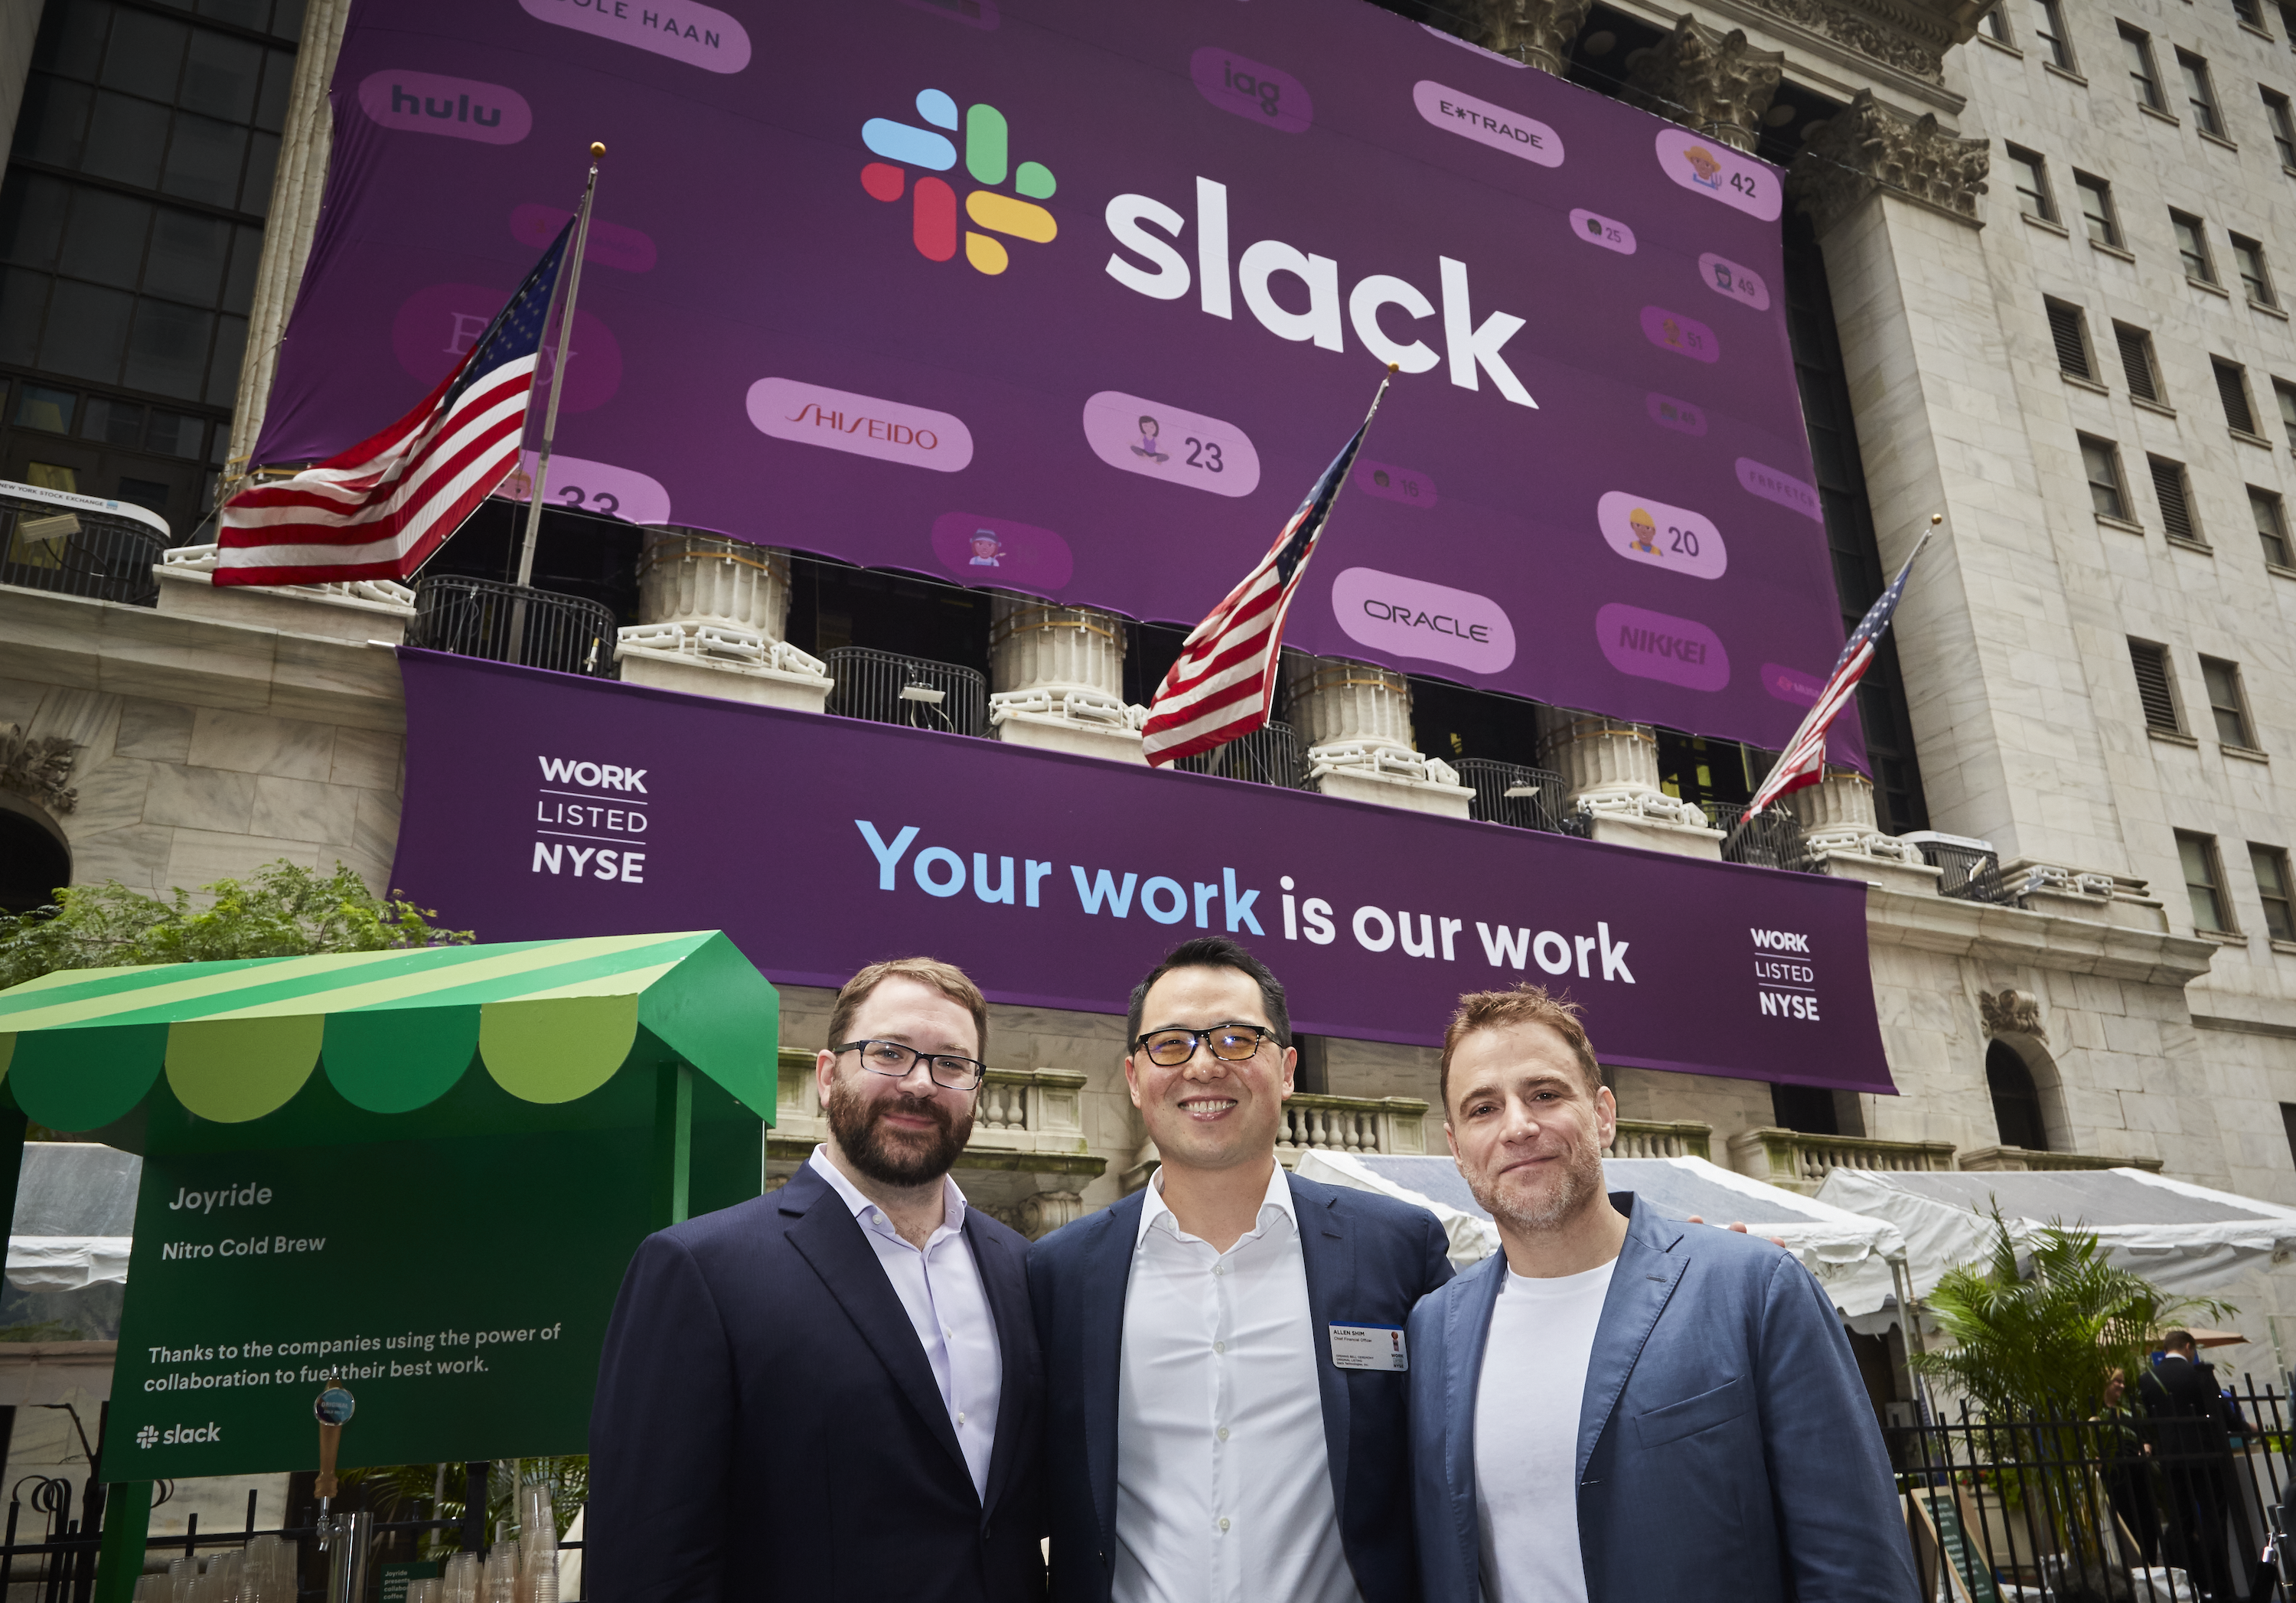 Why Does Slack Spend So Much on Sales and Marketing?